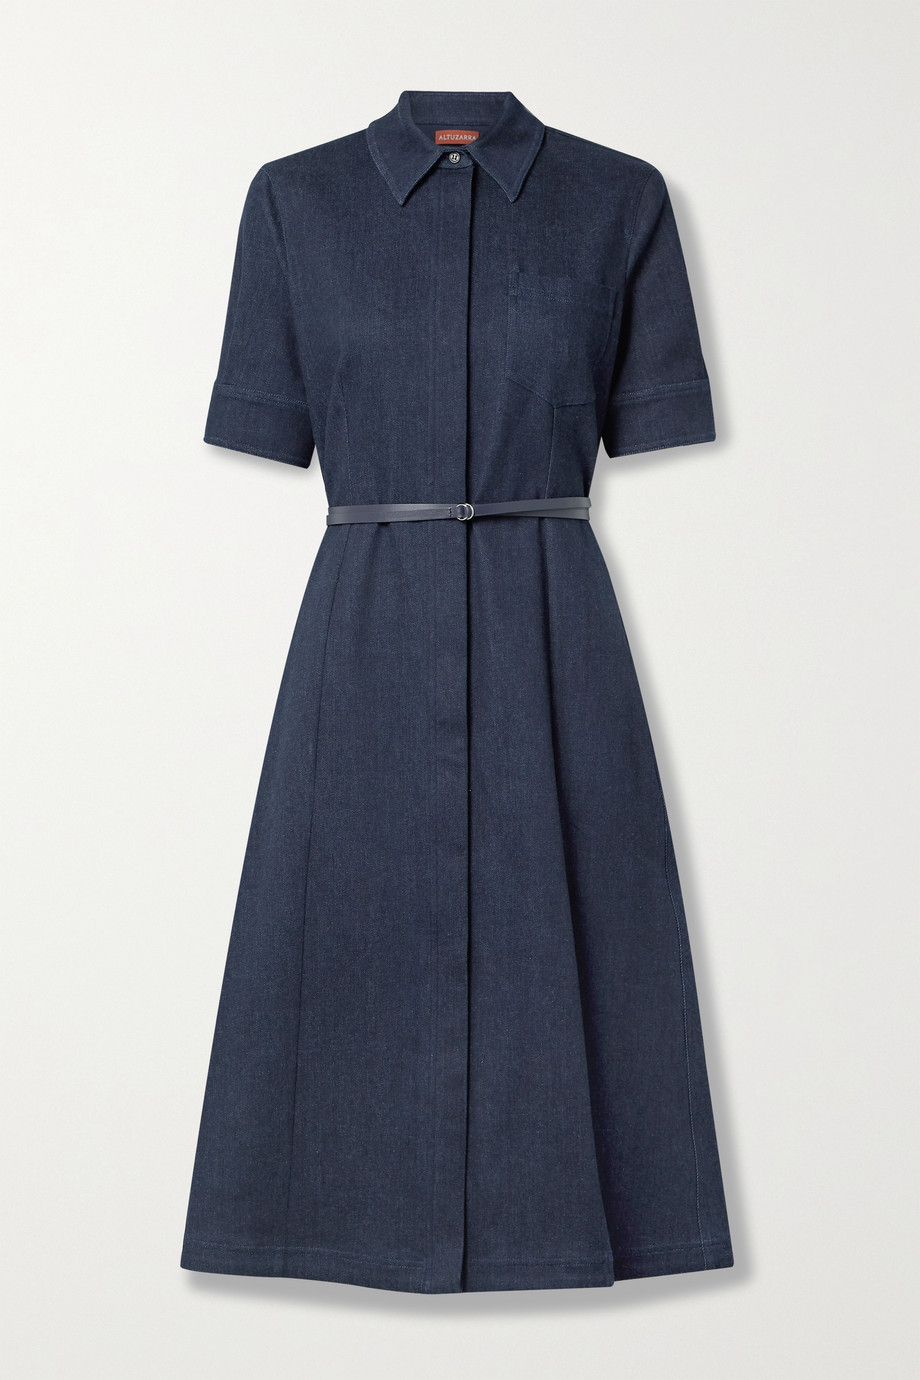 Altuzarra Kieran belted denim midi dress